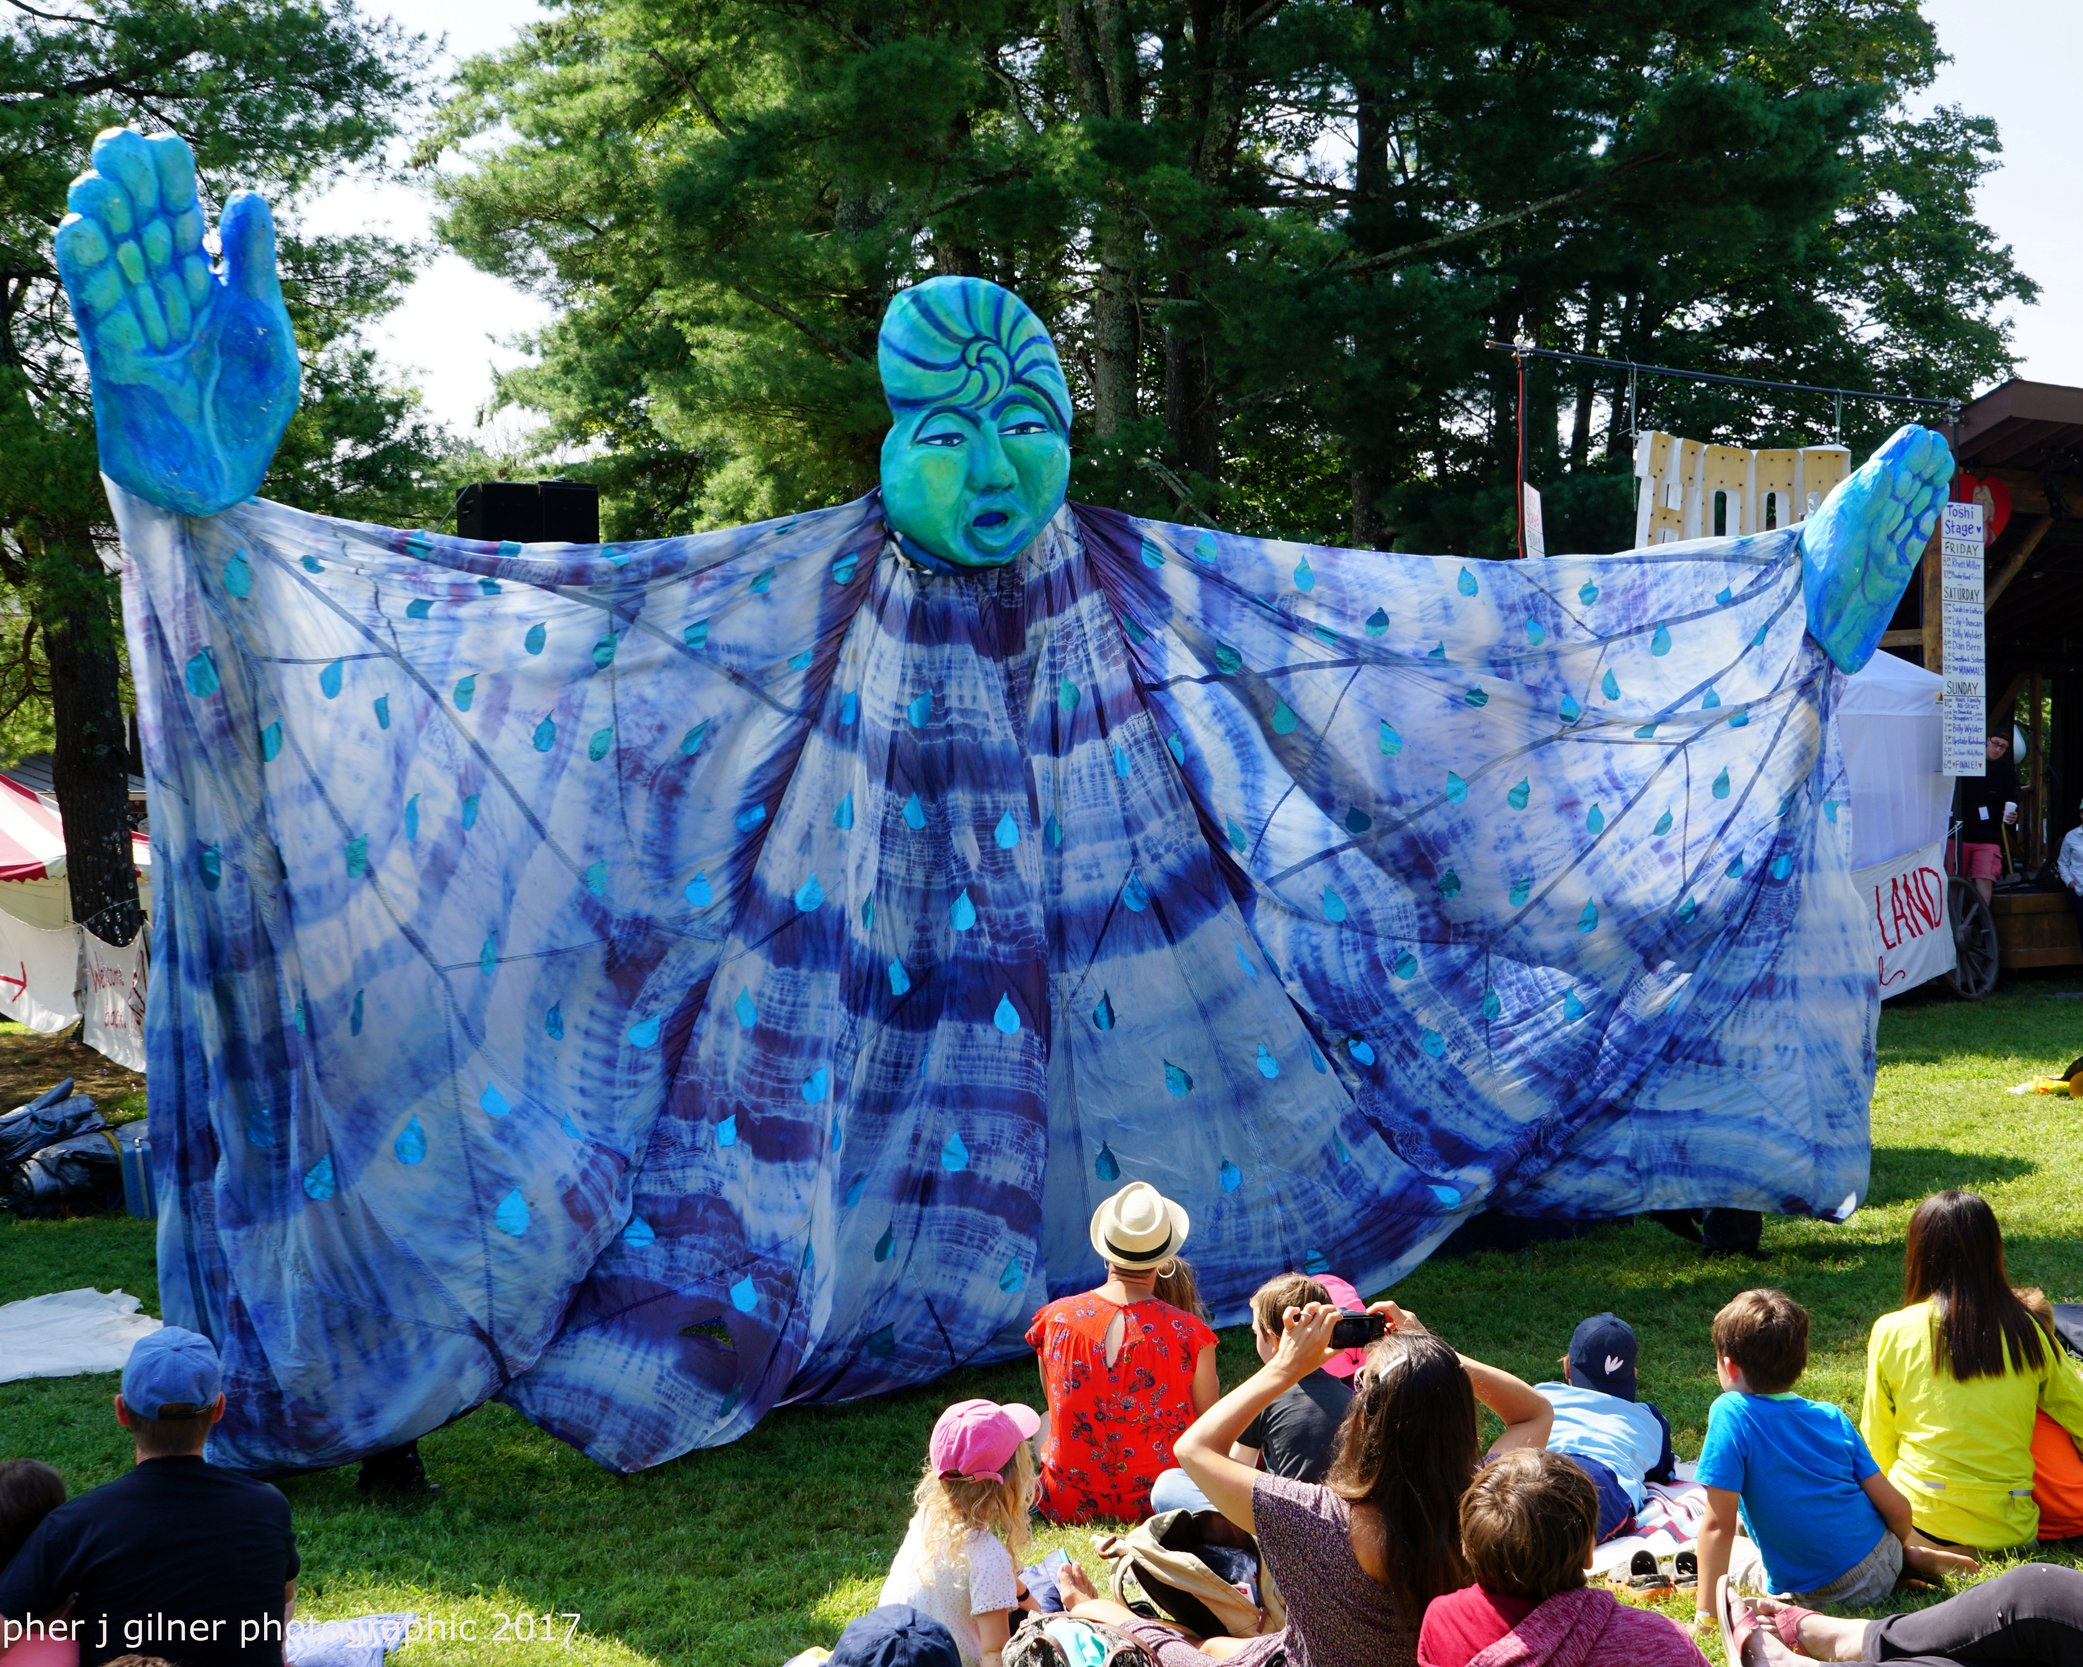 arm of the sea theater - Arm of the Sea is an arts ensemble that fuses visual storytelling with live music in contemporary mask and puppet theater. Their large-scale multi-layered productions delight and inform audiences of all ages.